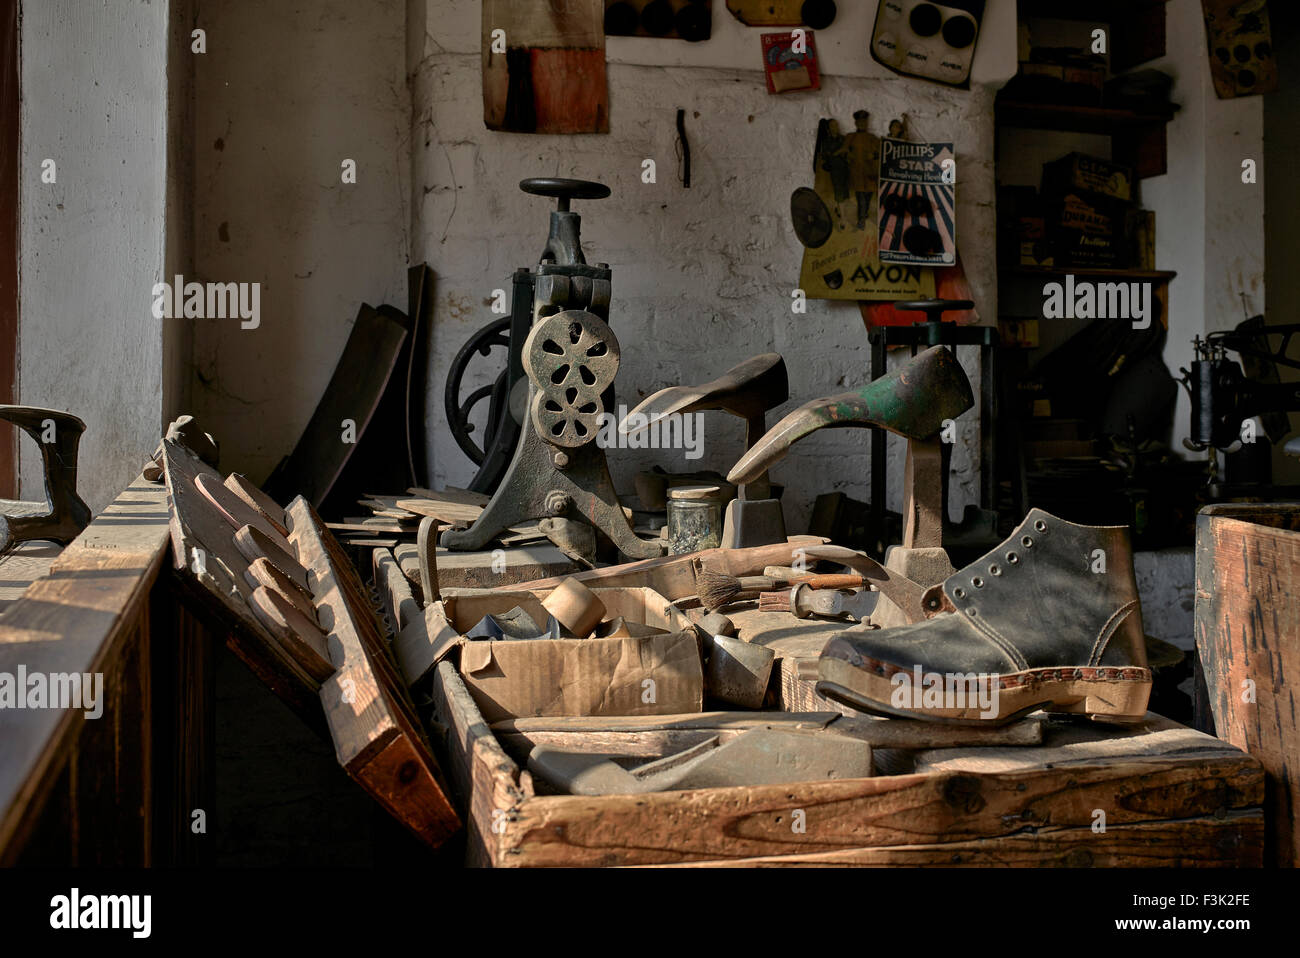 cobblers-shop-interior-with-period-items